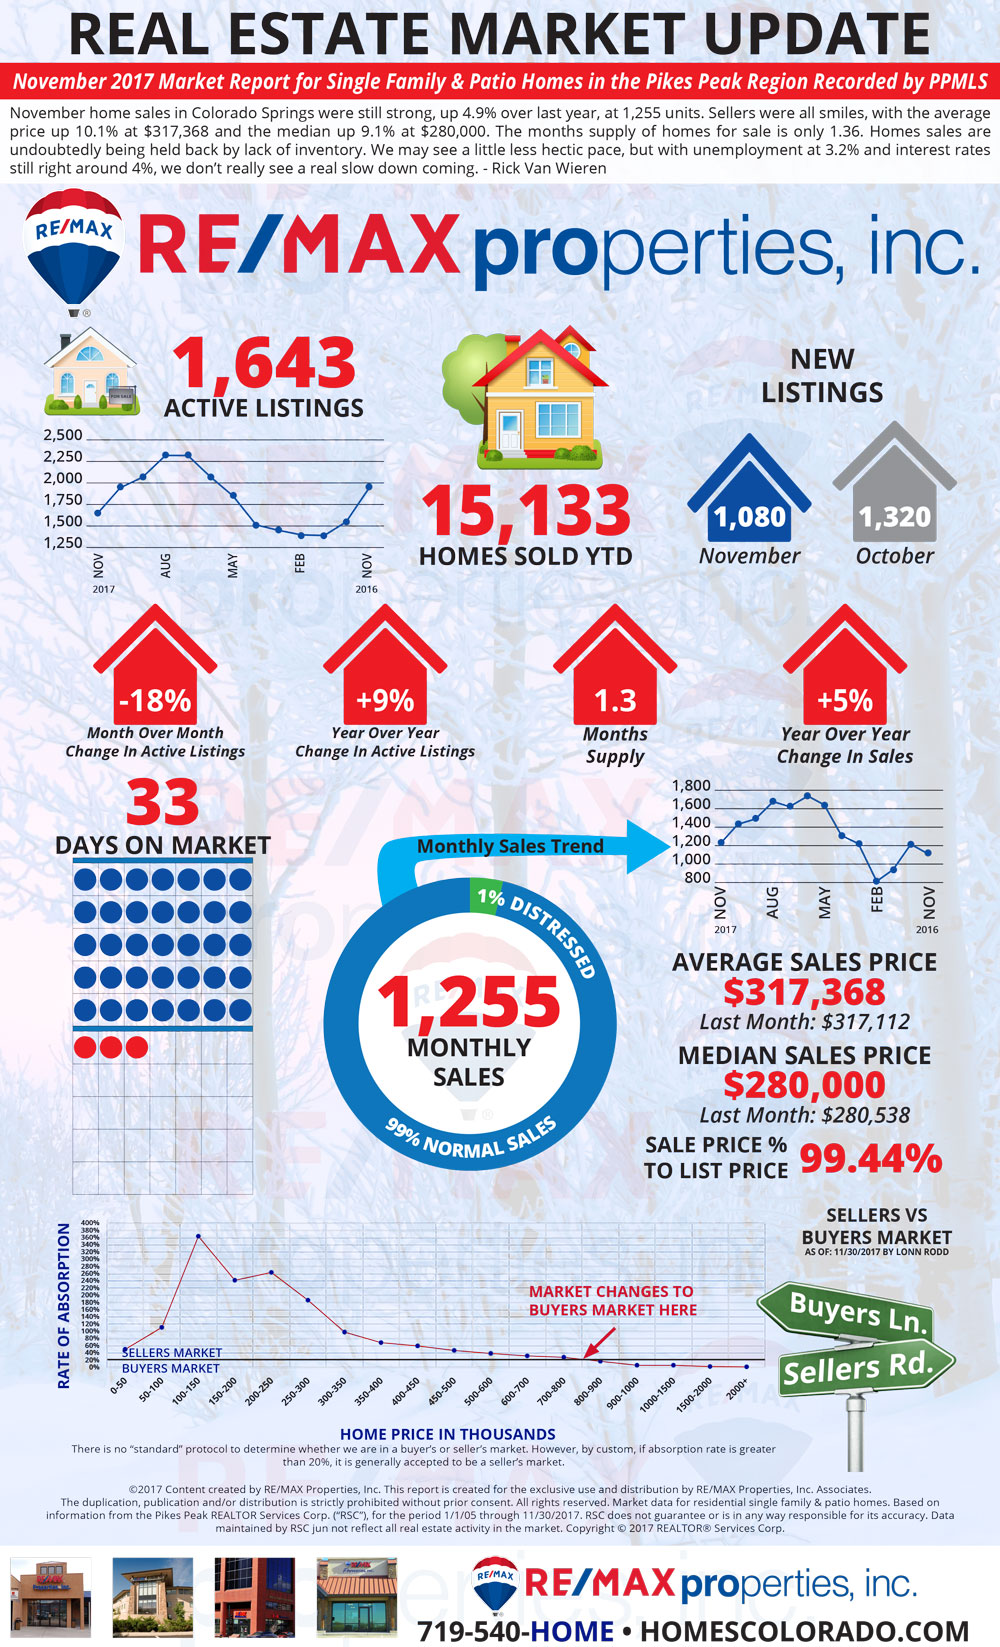 November 2017 Market Update - Colorado Springs Real Estate